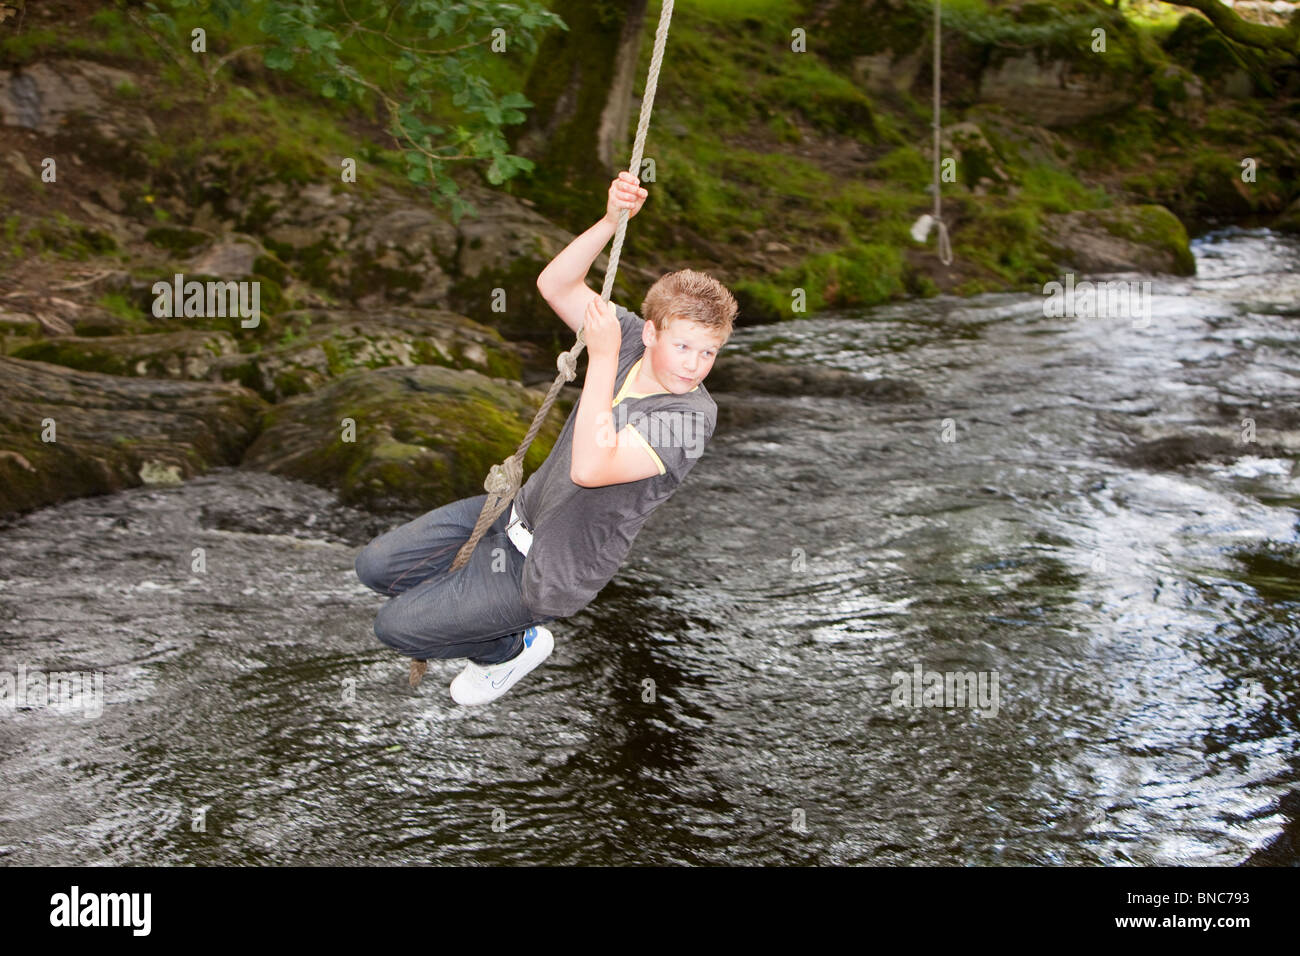 A young boy playing on a rope swing over the river Kent in Staveley, Lake District, UK. Stock Photo